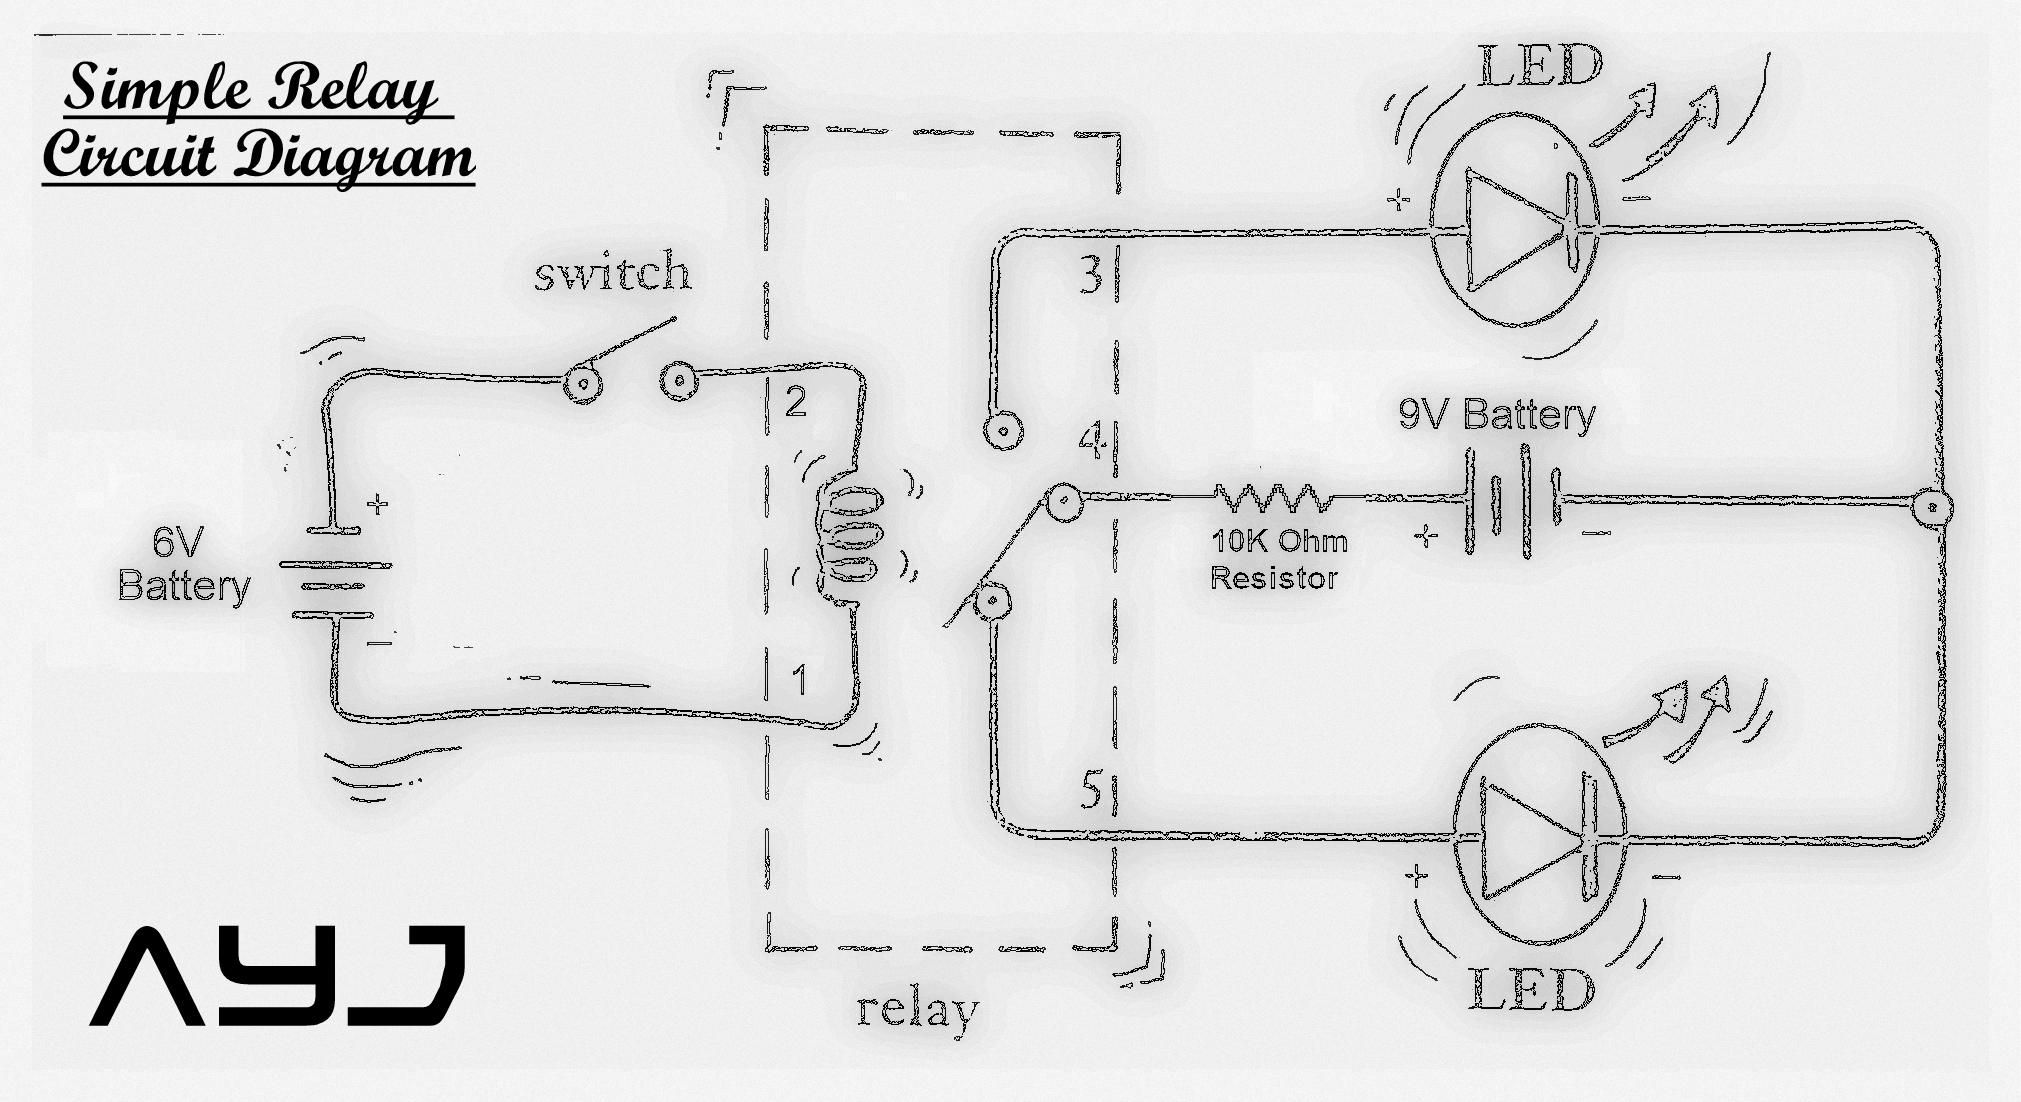 simple relay circuit circuit diagram electronics and electrical simple relay circuit circuit diagram [ 2021 x 1102 Pixel ]